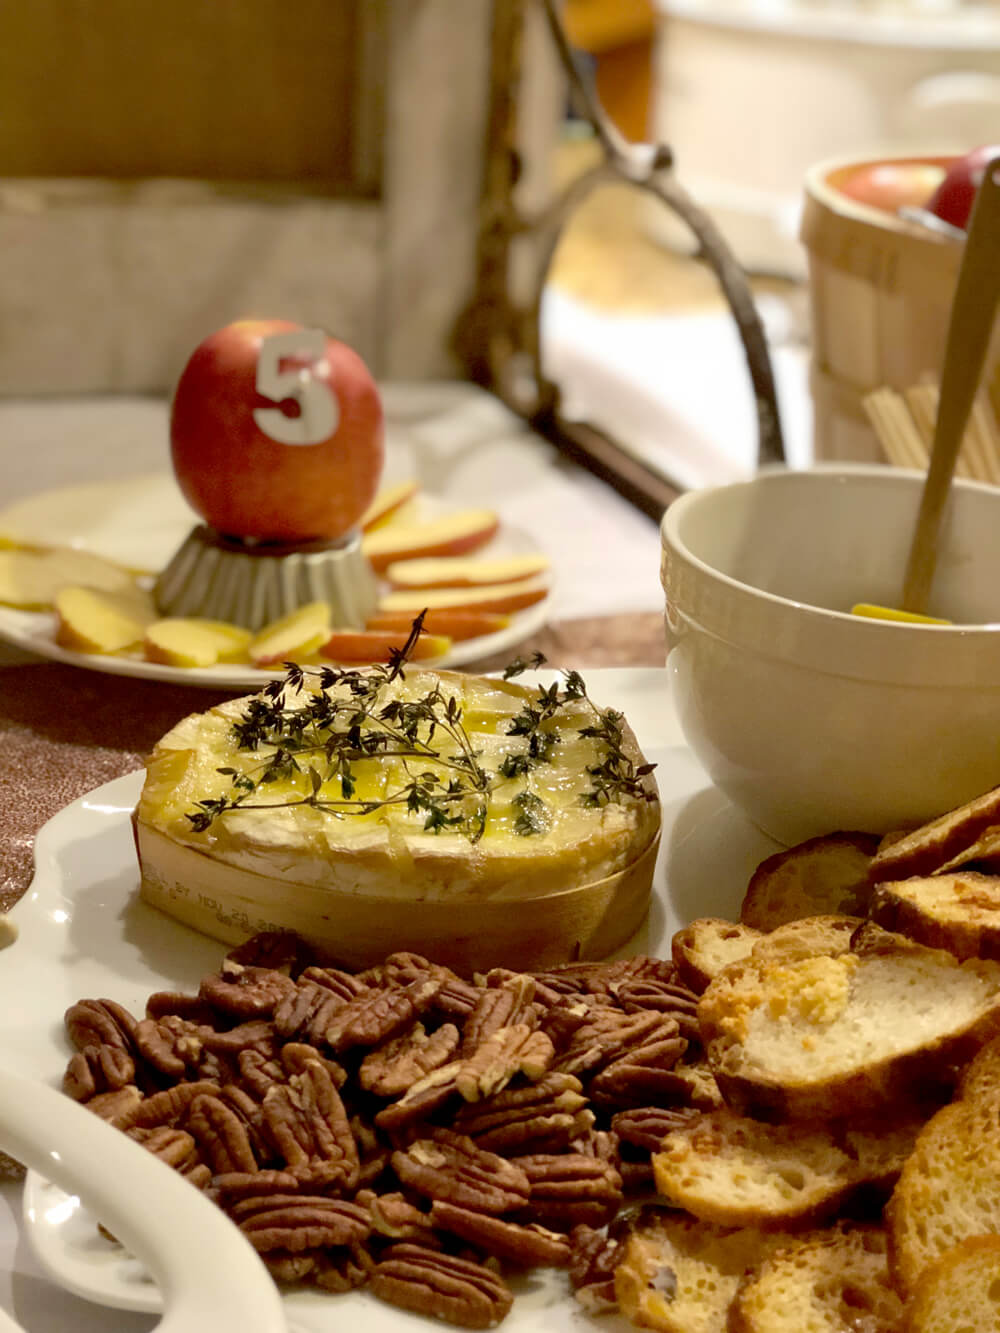 Baked brie, crostini, pecans, and jalapeno jelly for girls night harvest party menu ideas